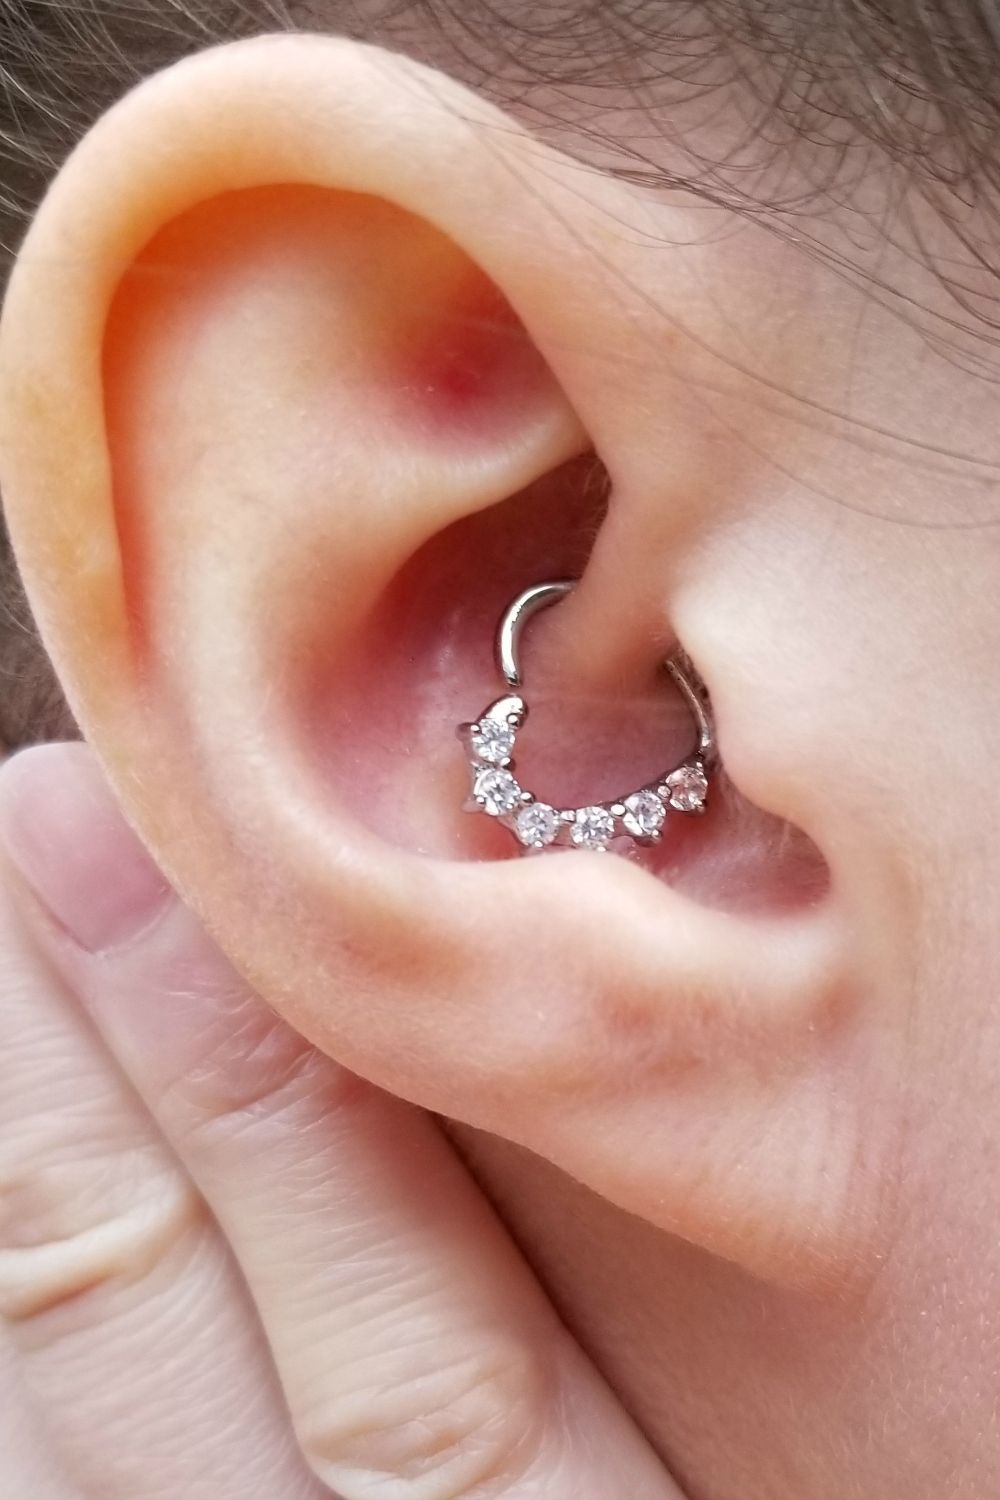 Piercing pain areas  A Piercing for Headache Relief  Years Later  EAR PIERCINGS PAIN